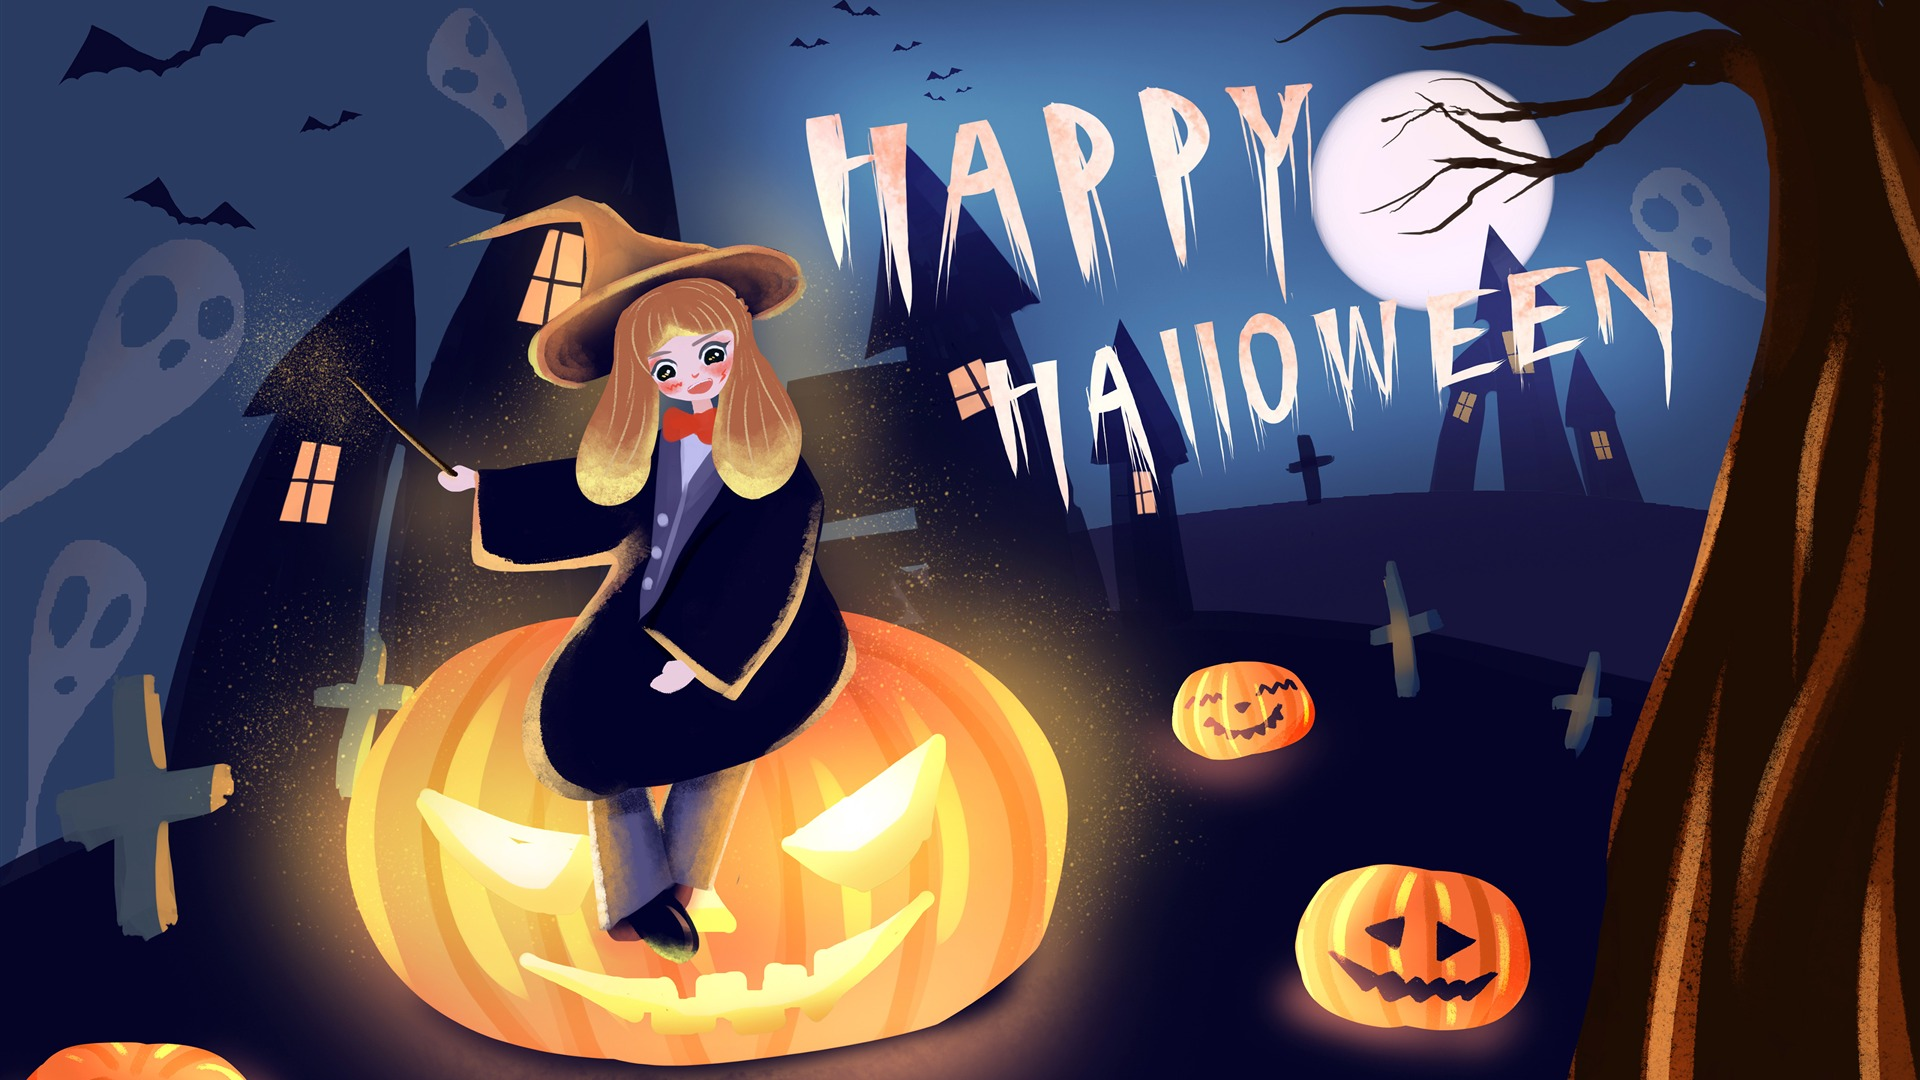 Happy Halloween Girl Pumpkin illustration Wallpaper HD 1920x1080